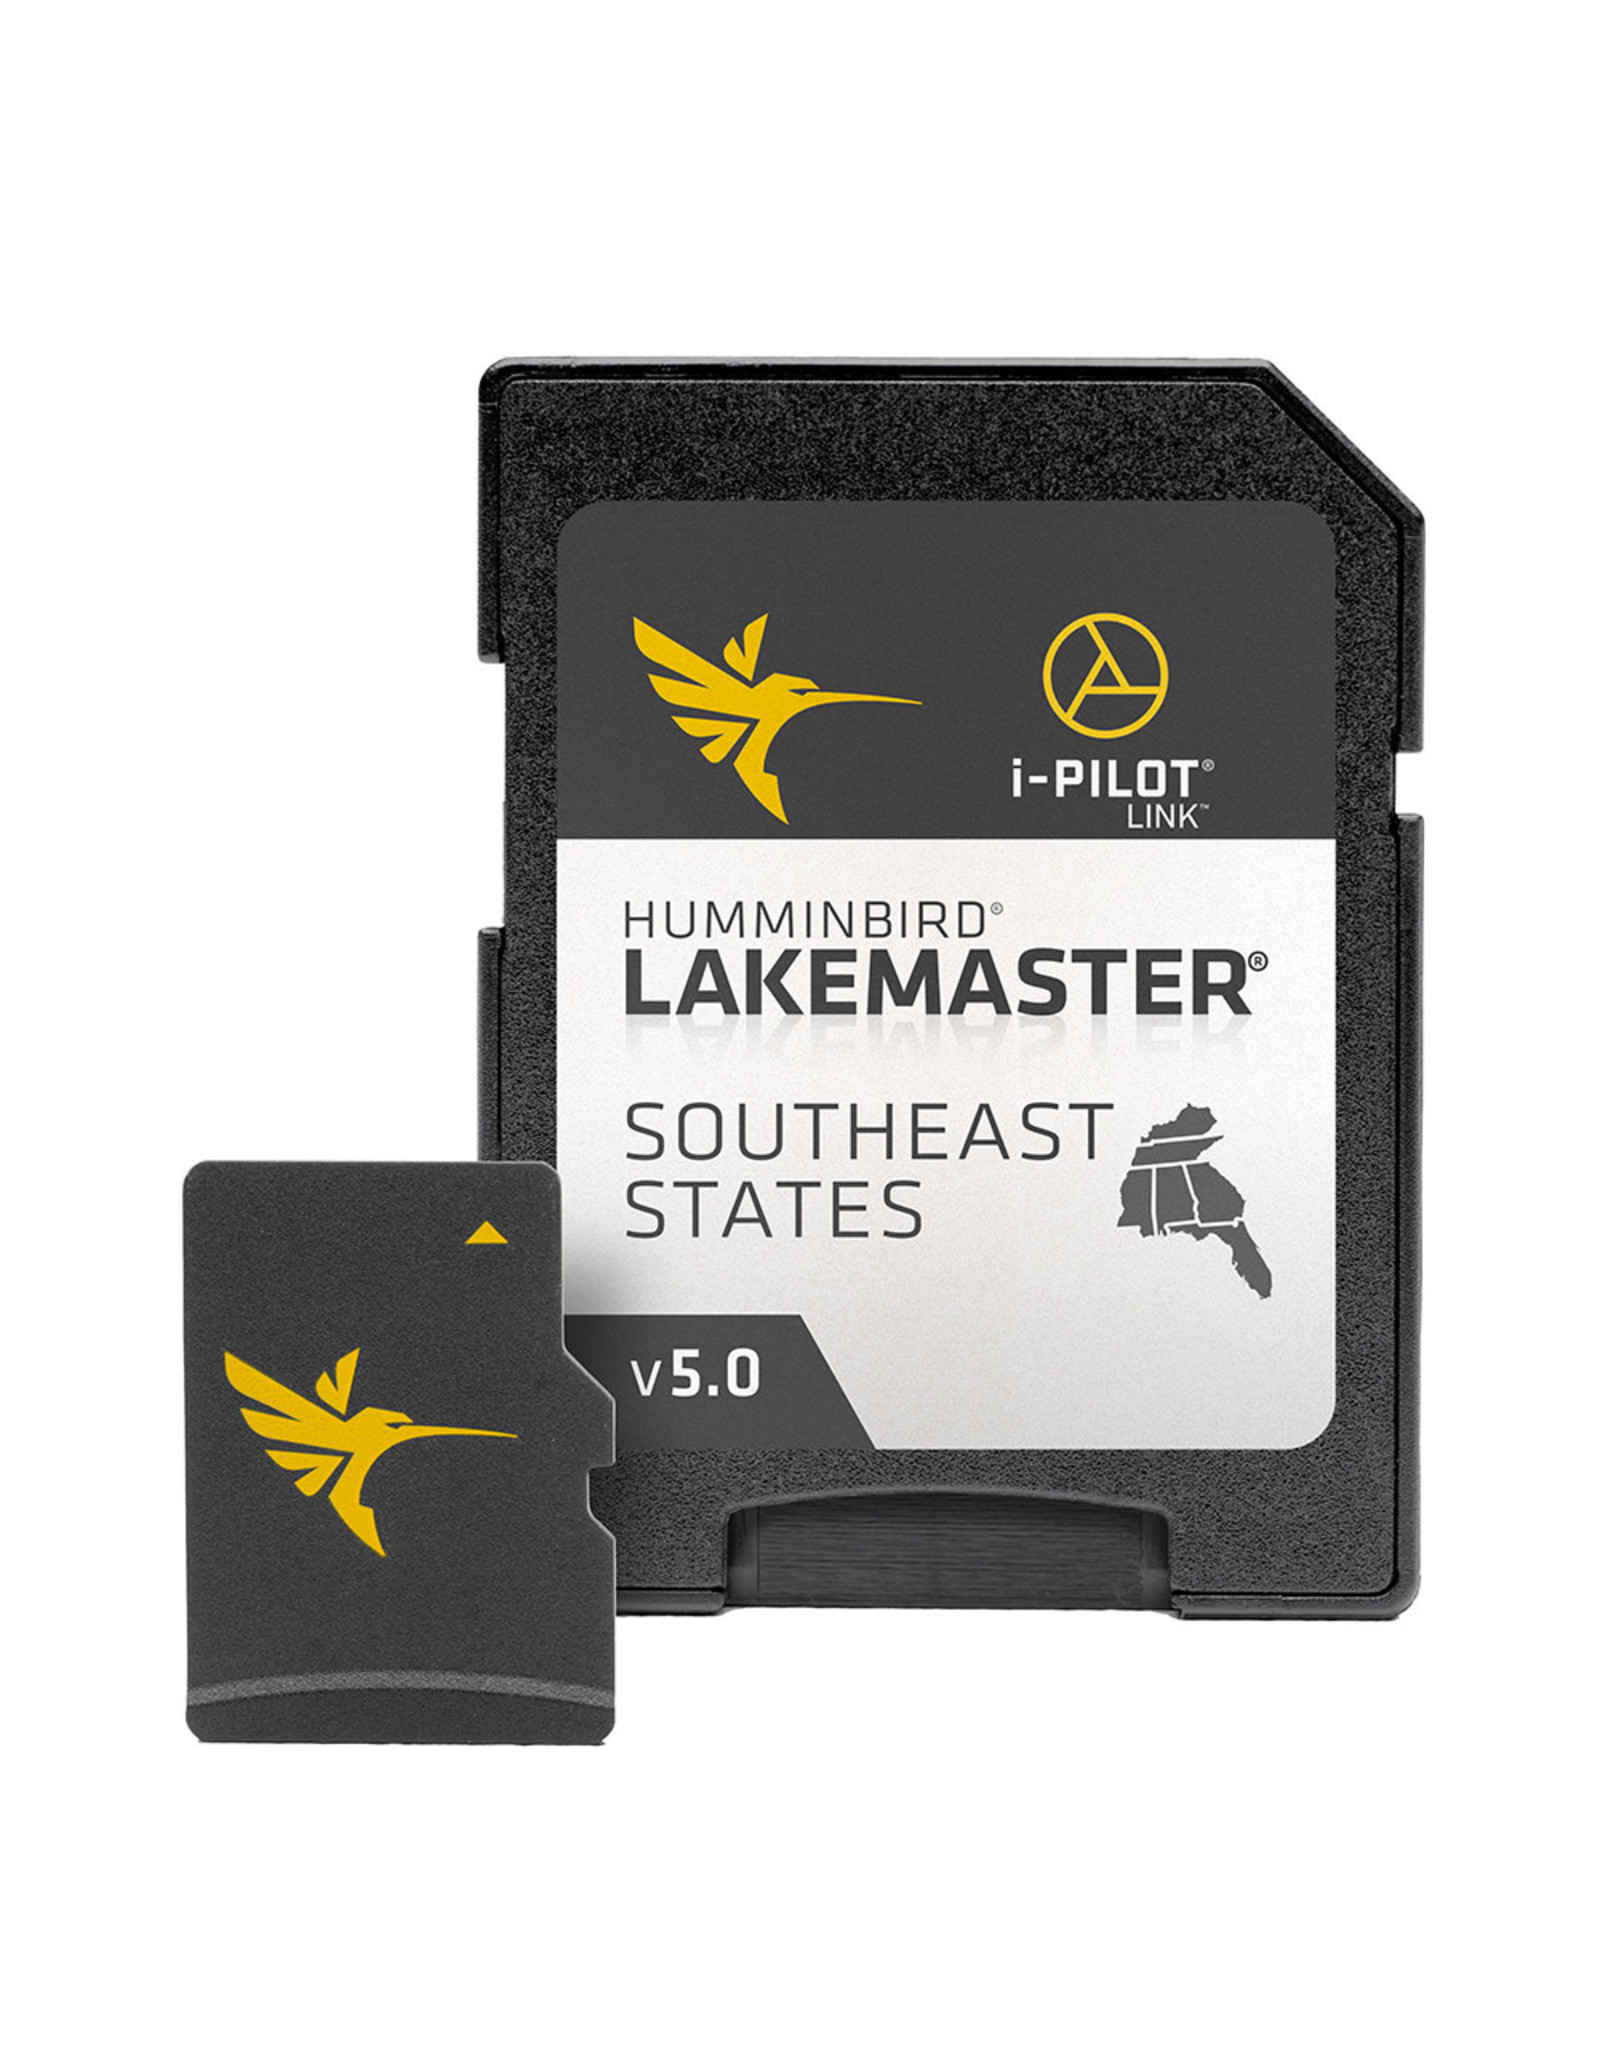 Humminbird Lakemaster Southeast v5.0